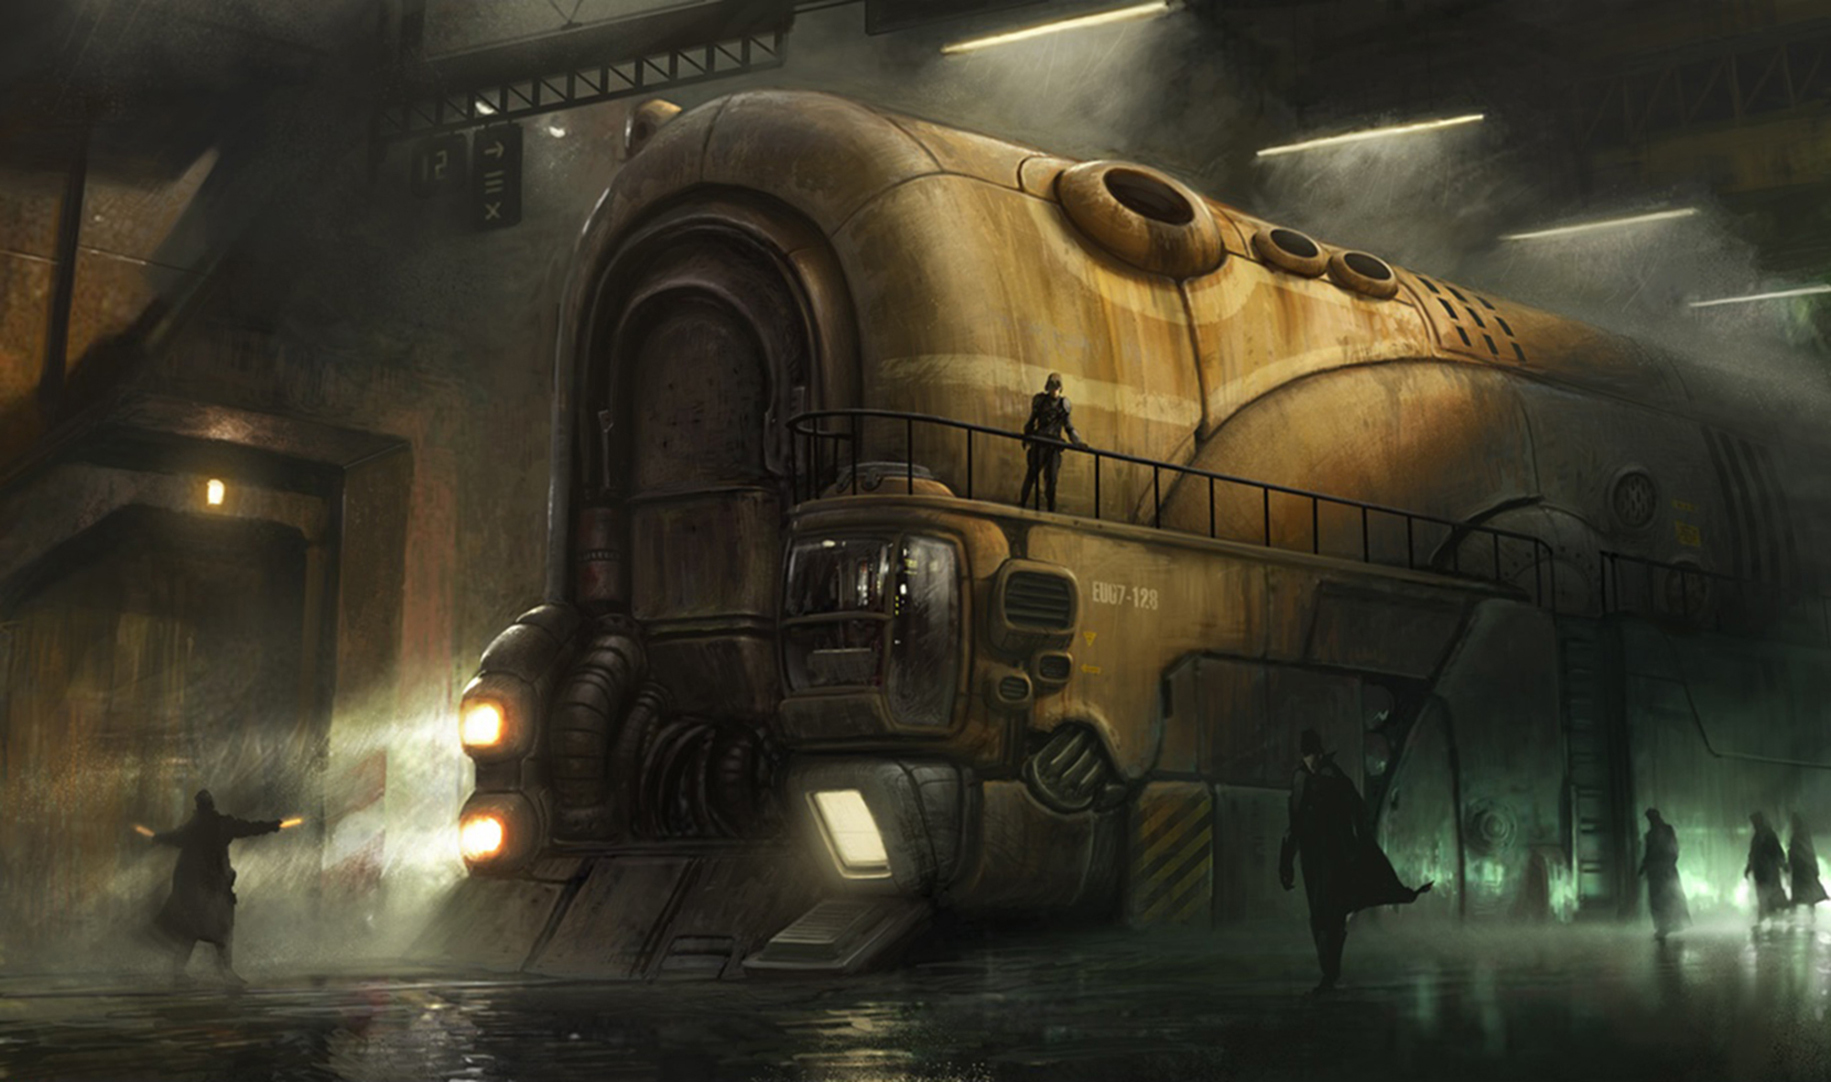 Sci Fi   Steampunk Steampunk Space Furnace Wallpaper 1831x1082